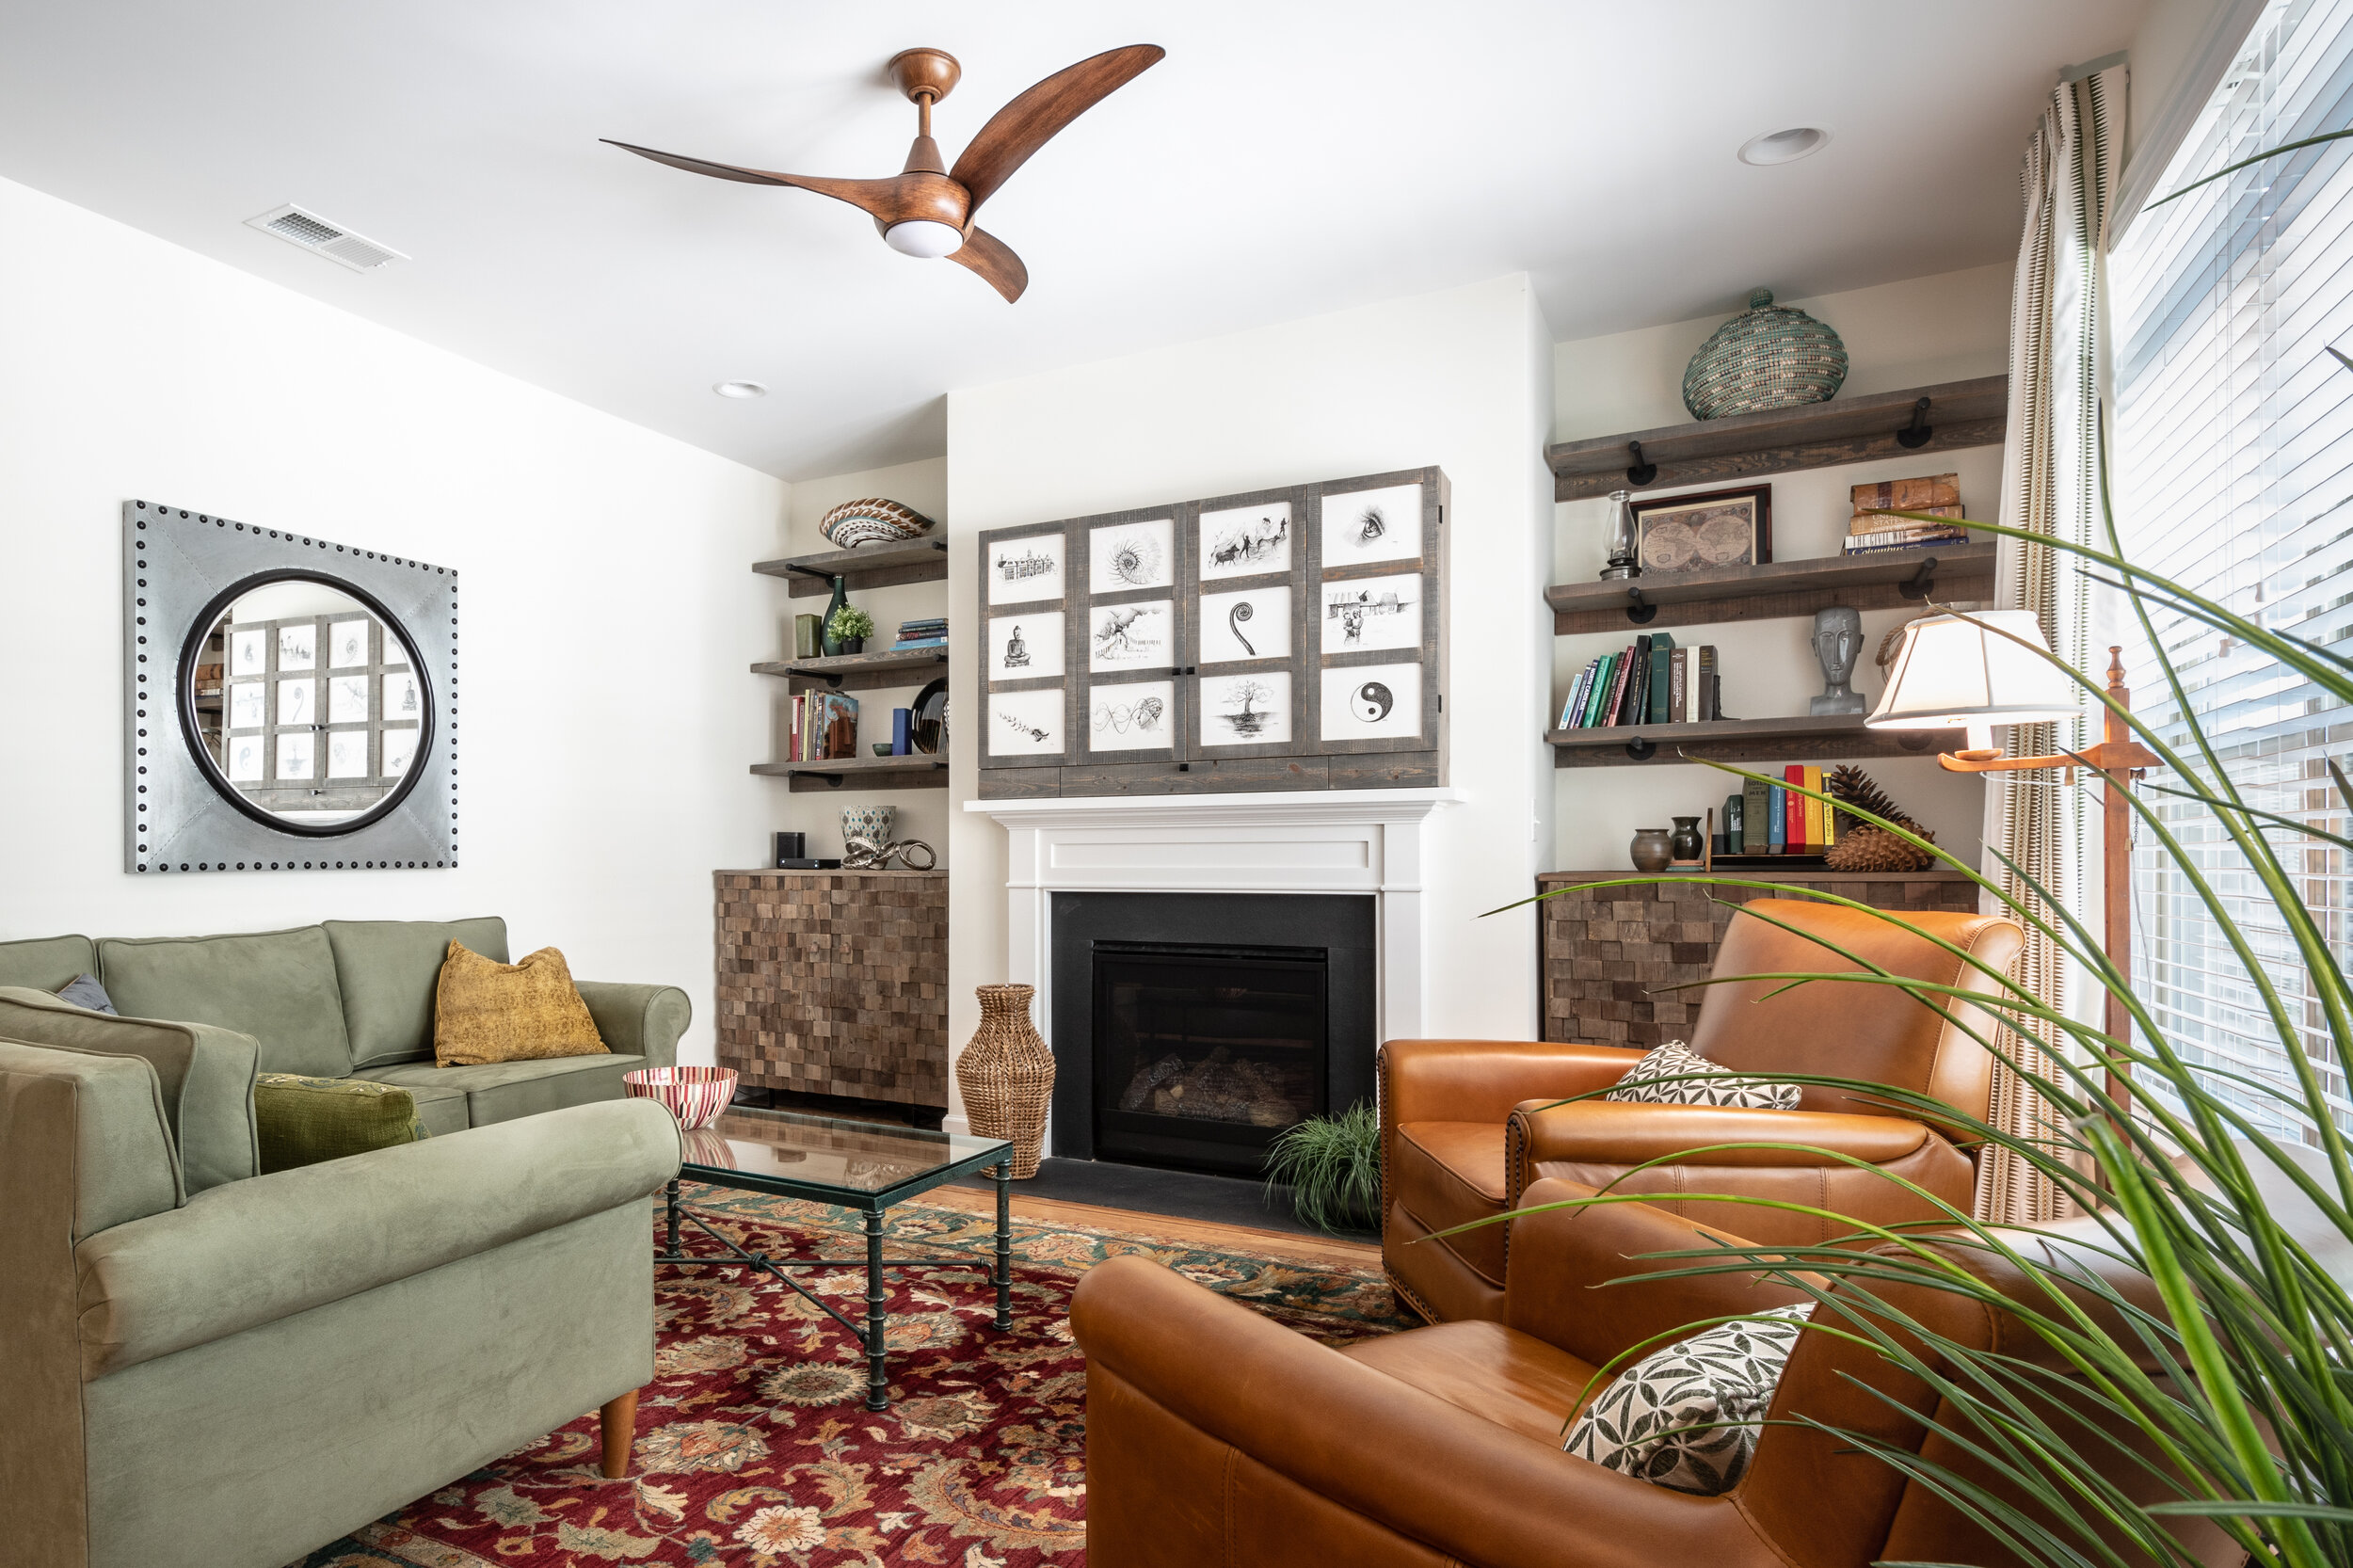 Living room with custom shelving and affordable accessories combined with homeowners collection.